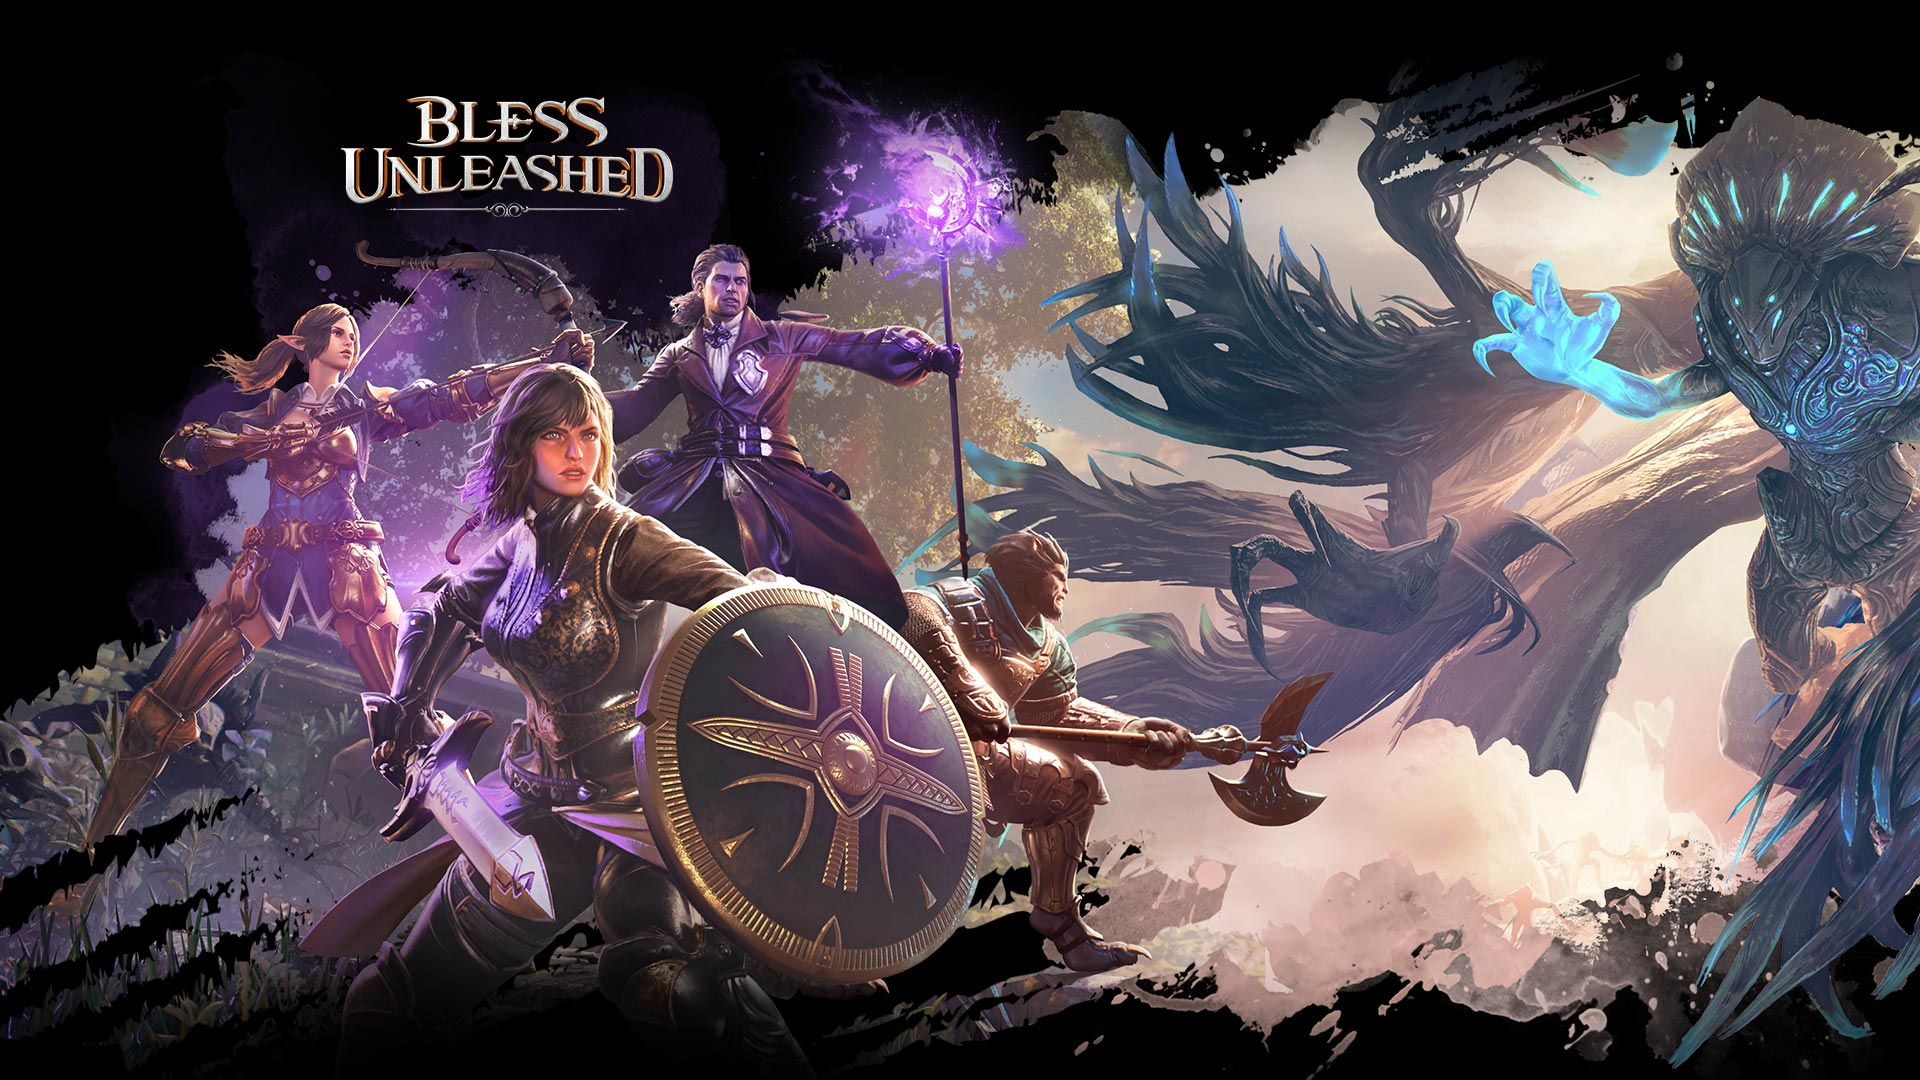 Four characters from Bless Unleashed in purple light about to fight a monster glowing blue